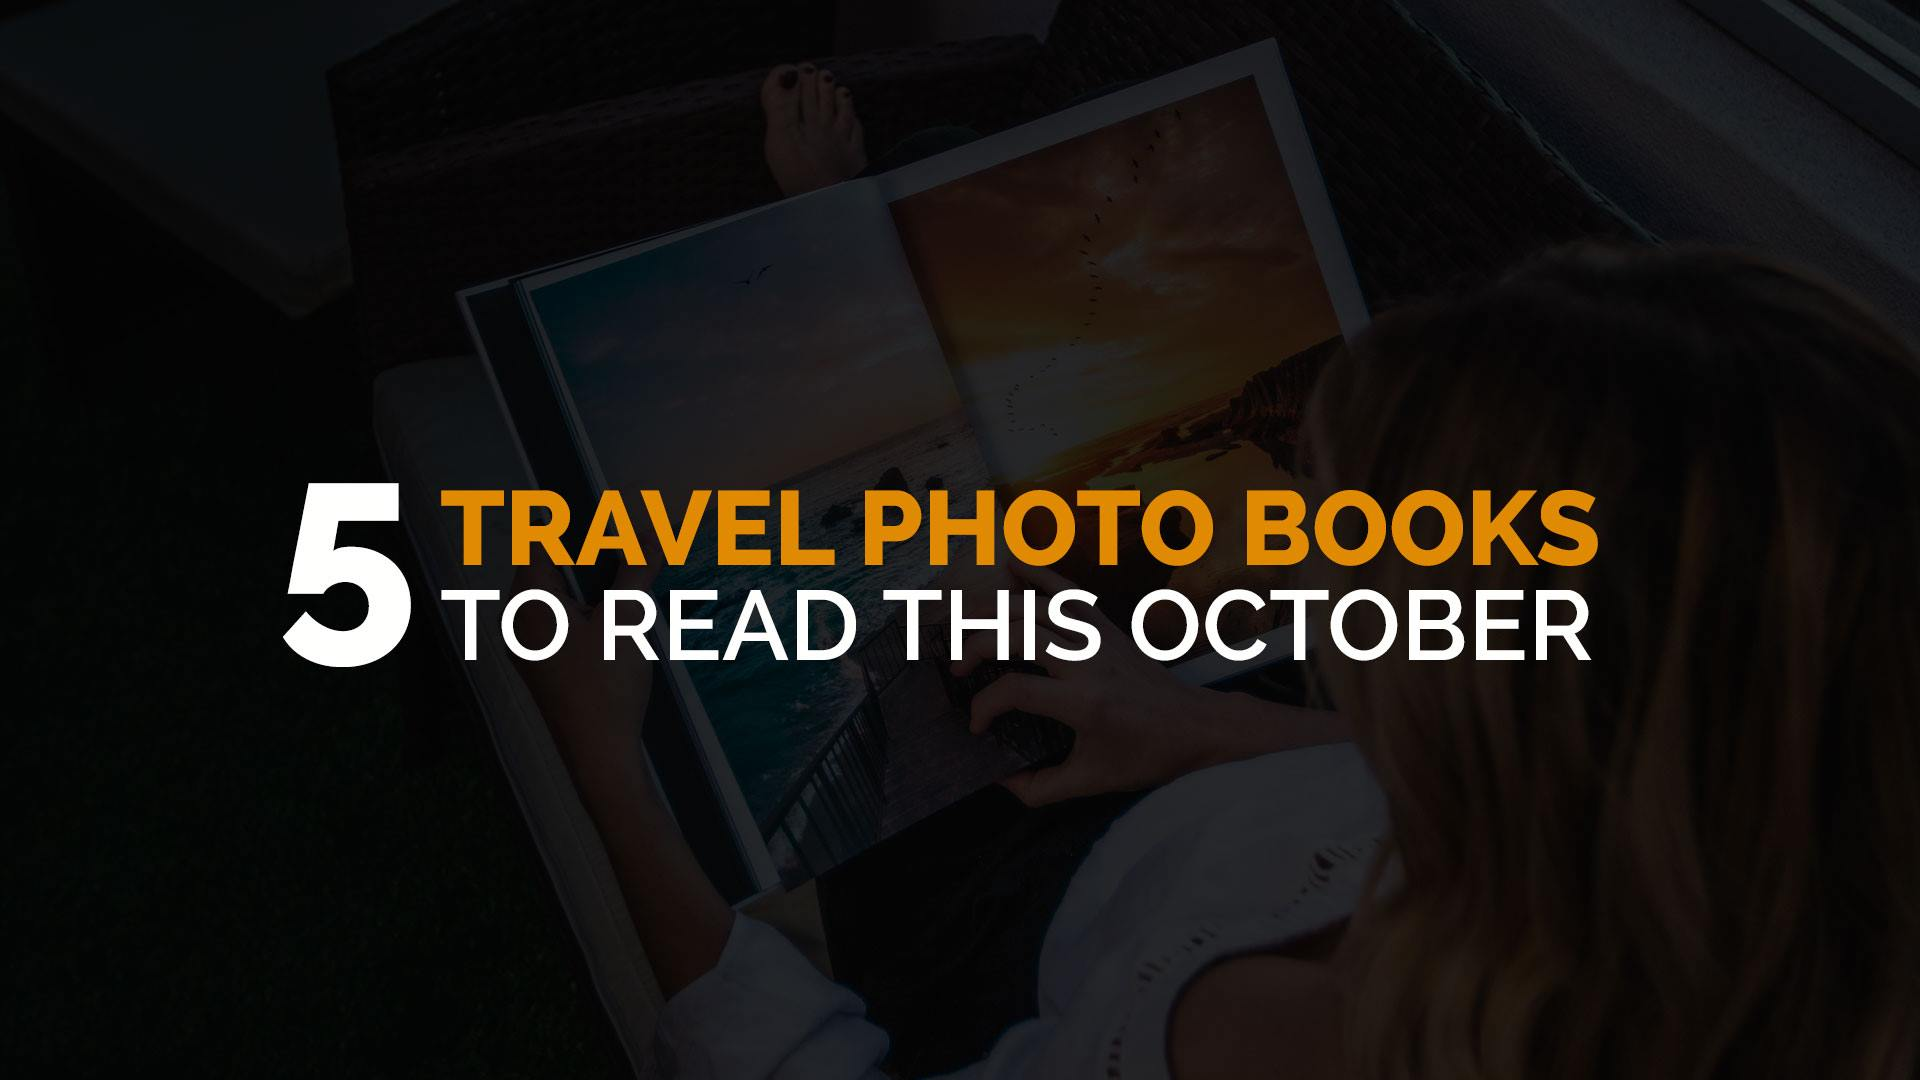 five travel photo books to read this october banner